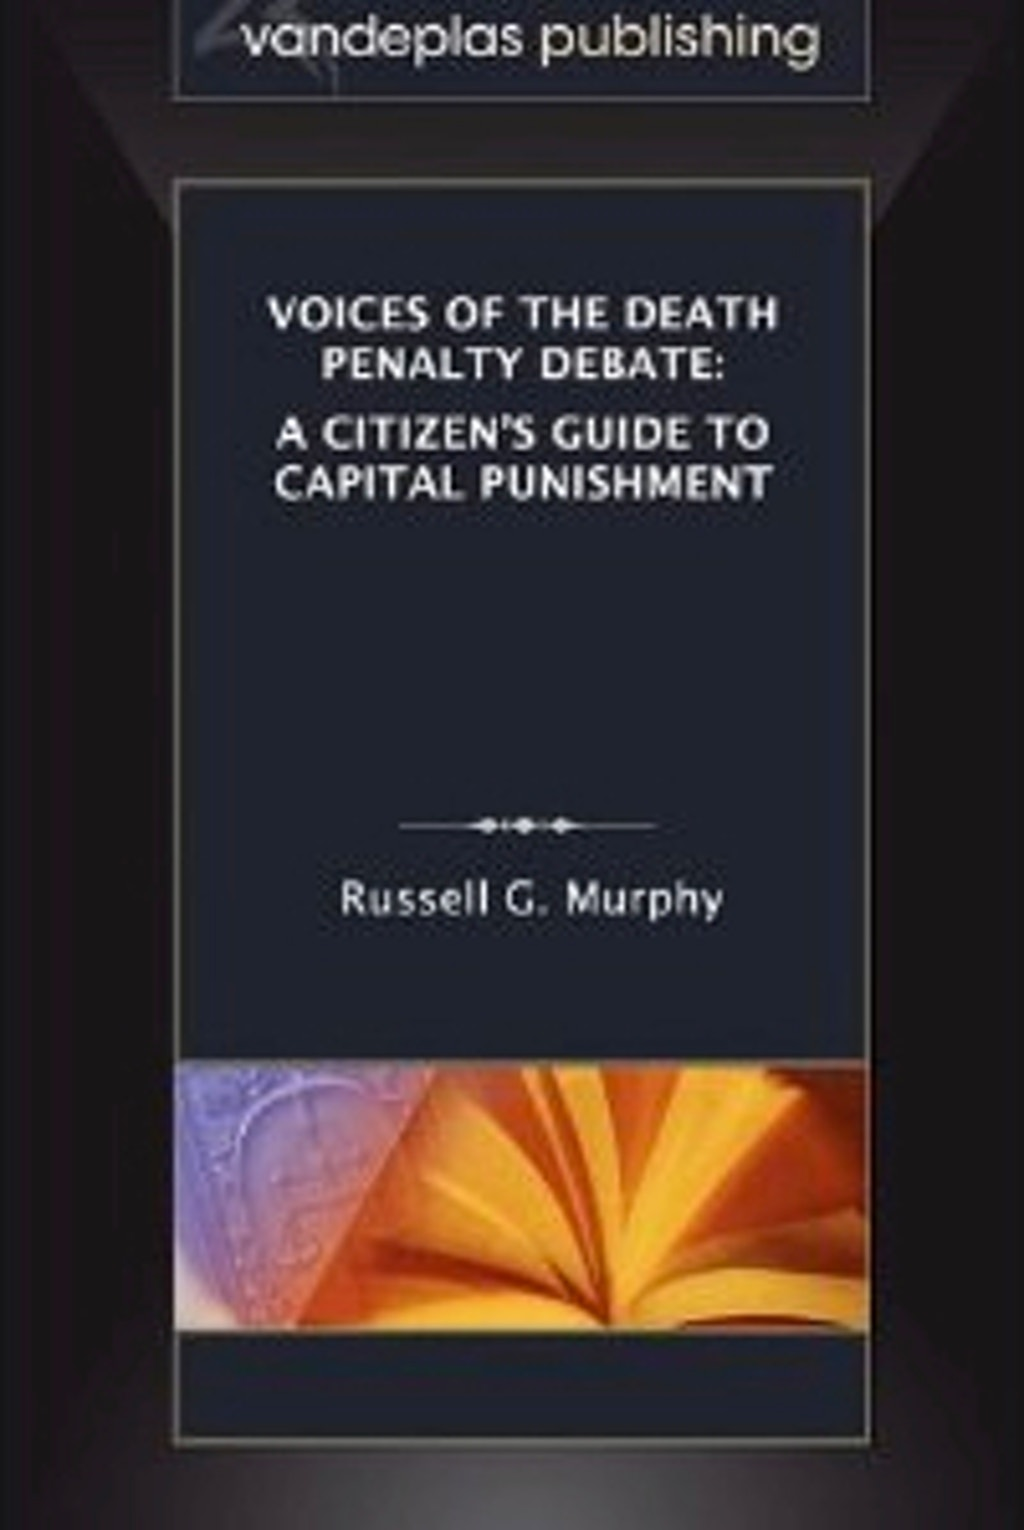 BOOKS: Voices of the Death Penalty Debate